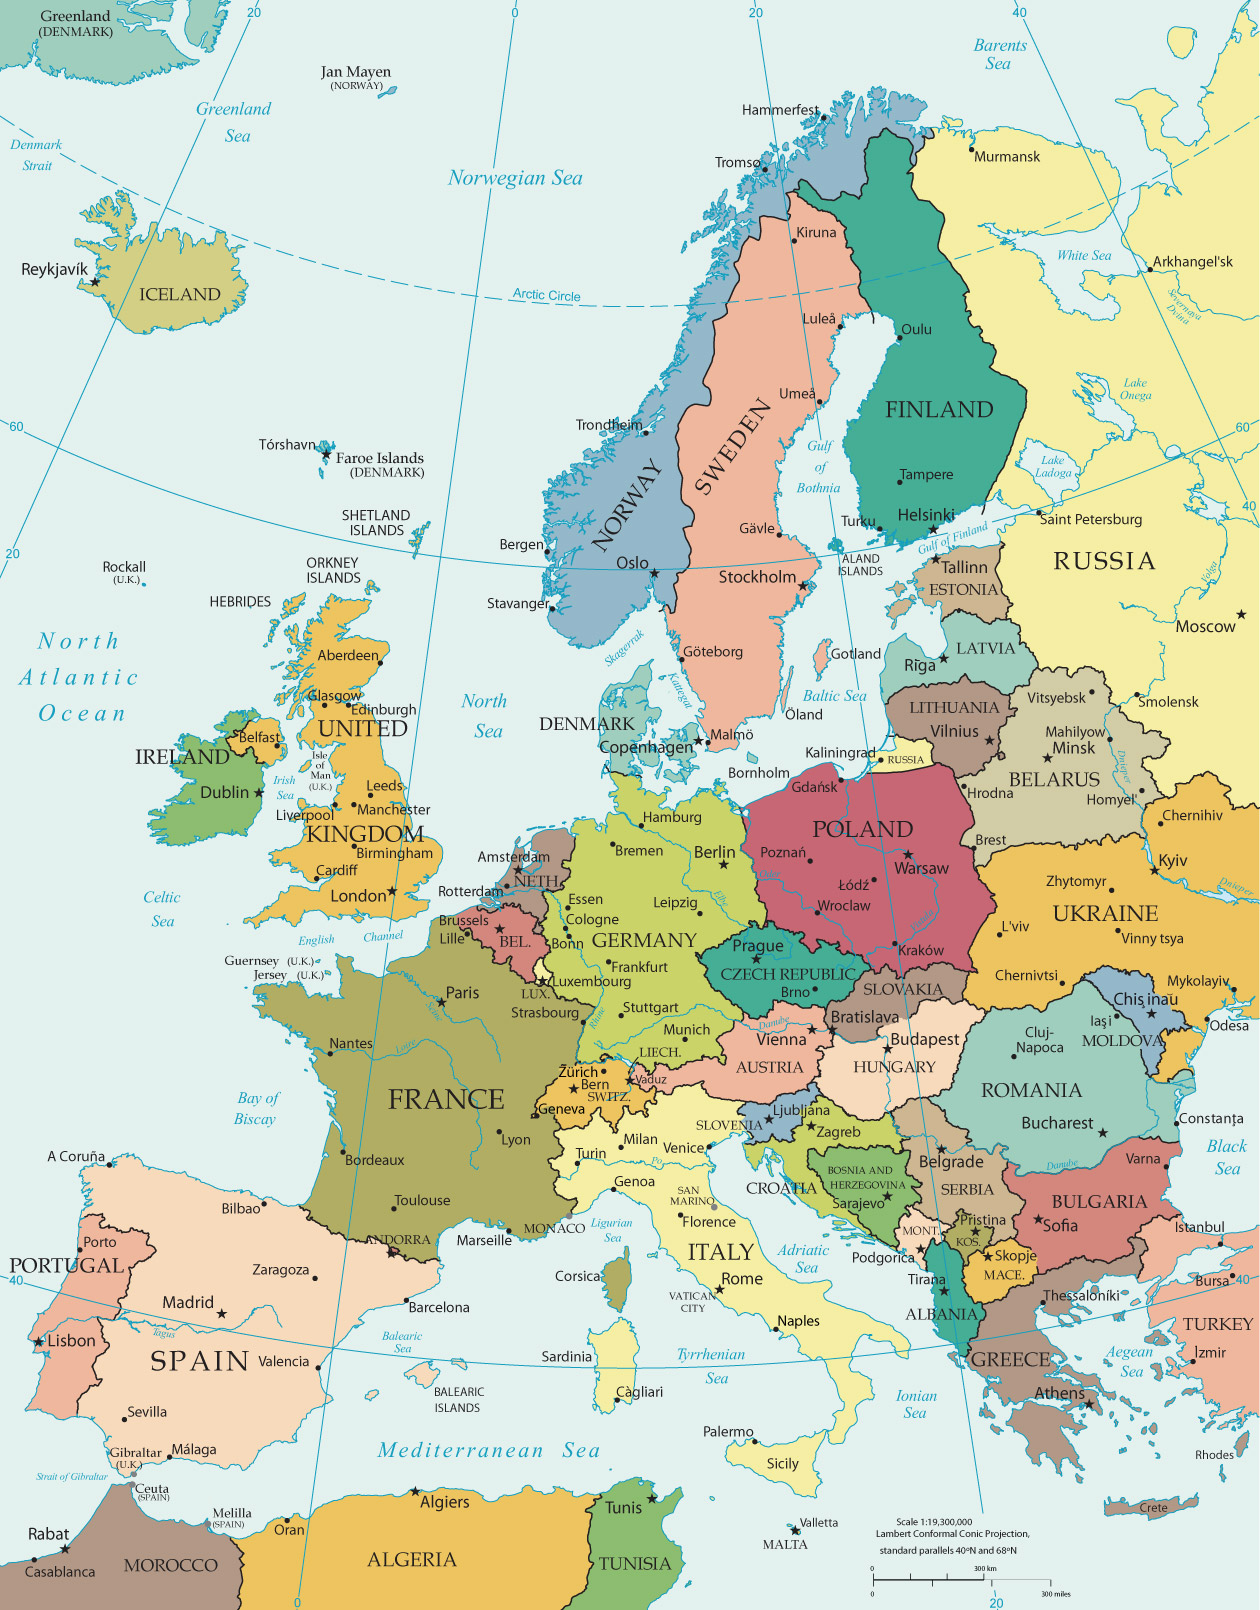 Political Map of Europe - Countries